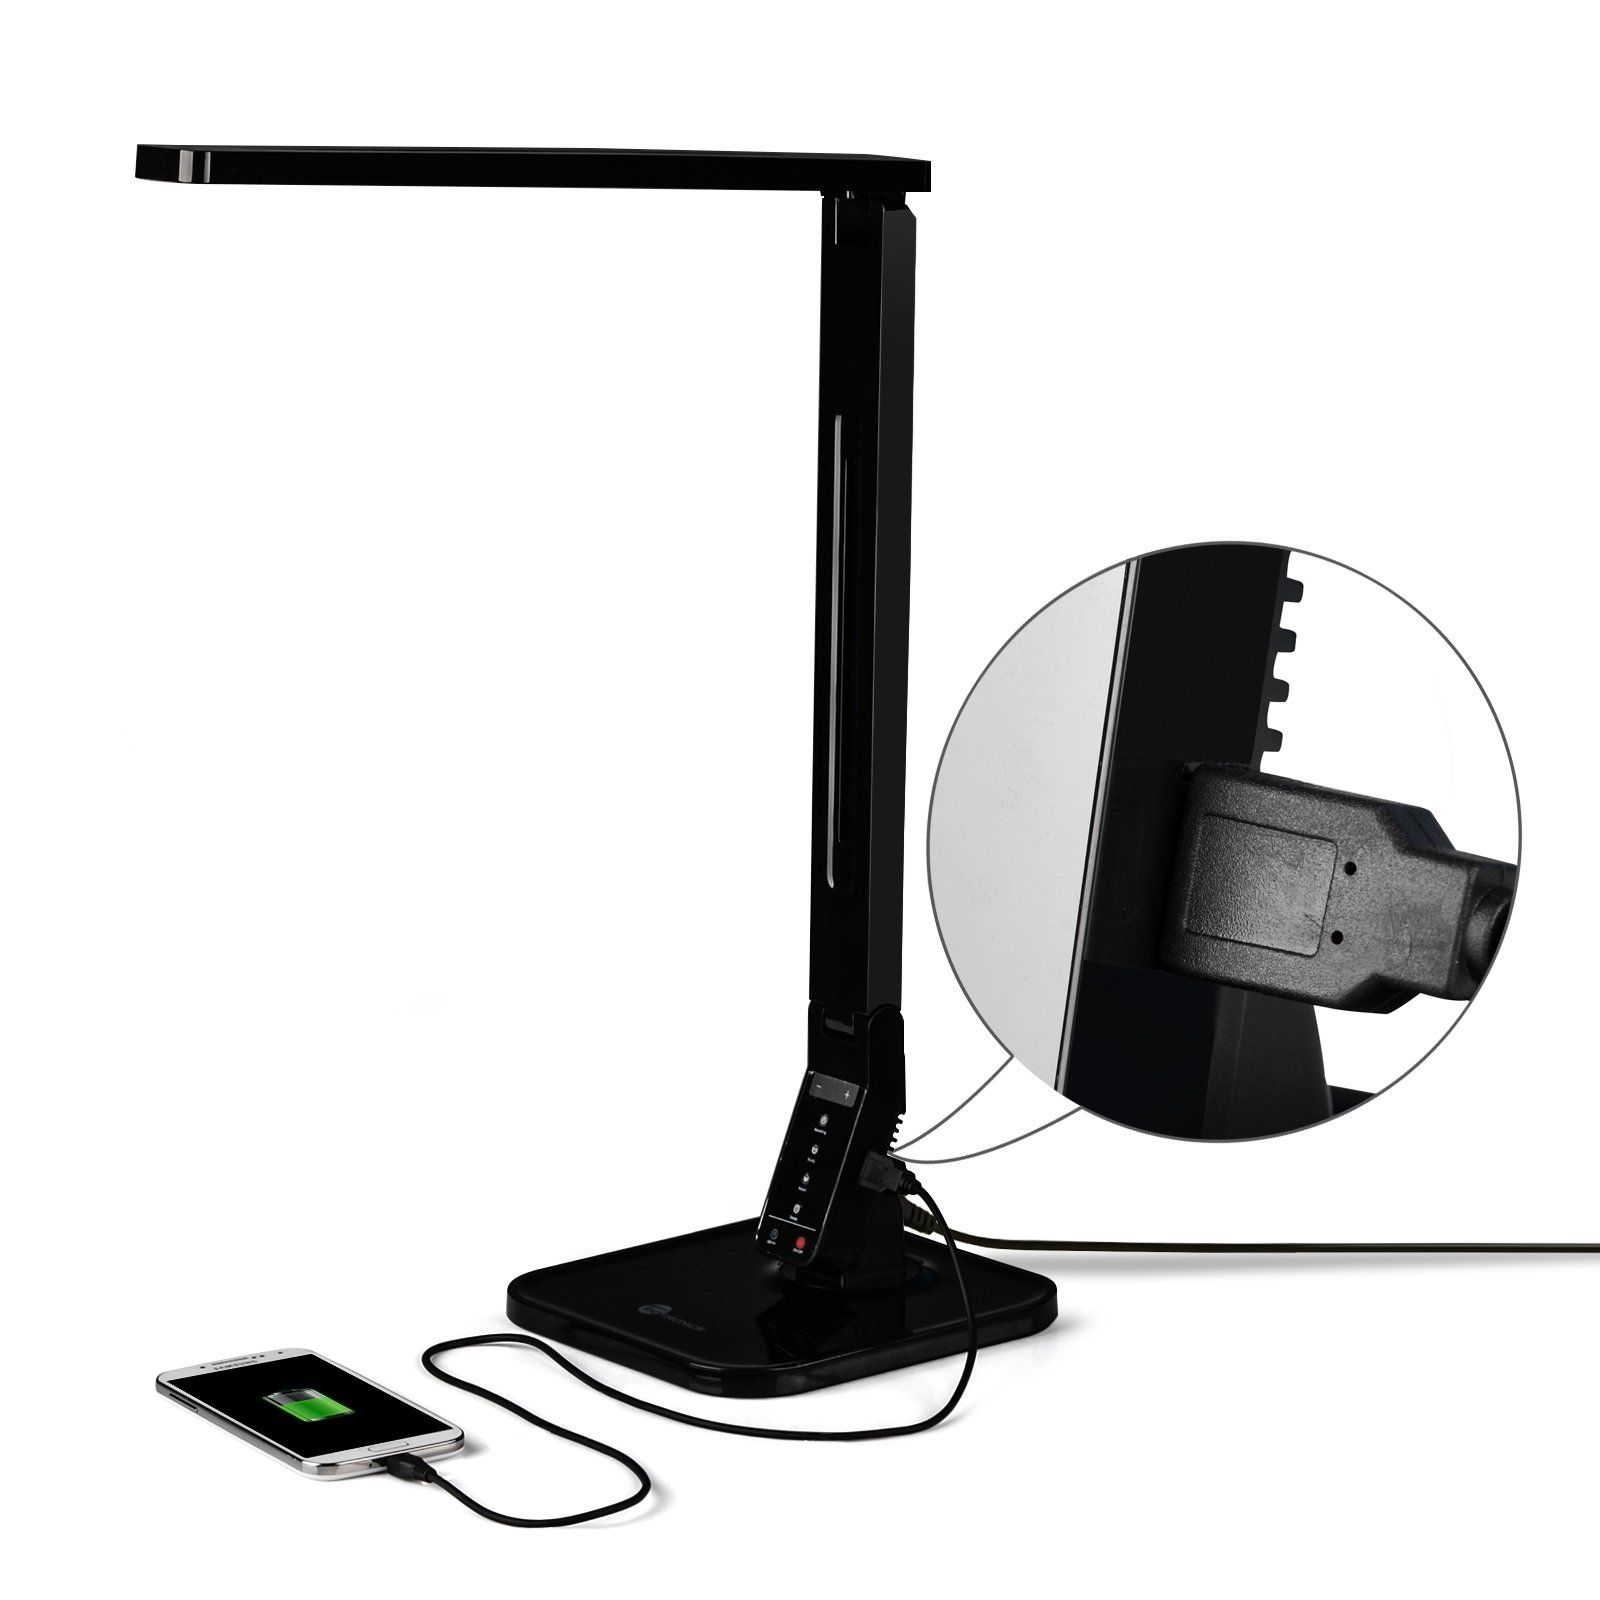 1 Rated LED Desk Lamp Brand on Amazon. TaoTronics® Elune TT-DL01 ...